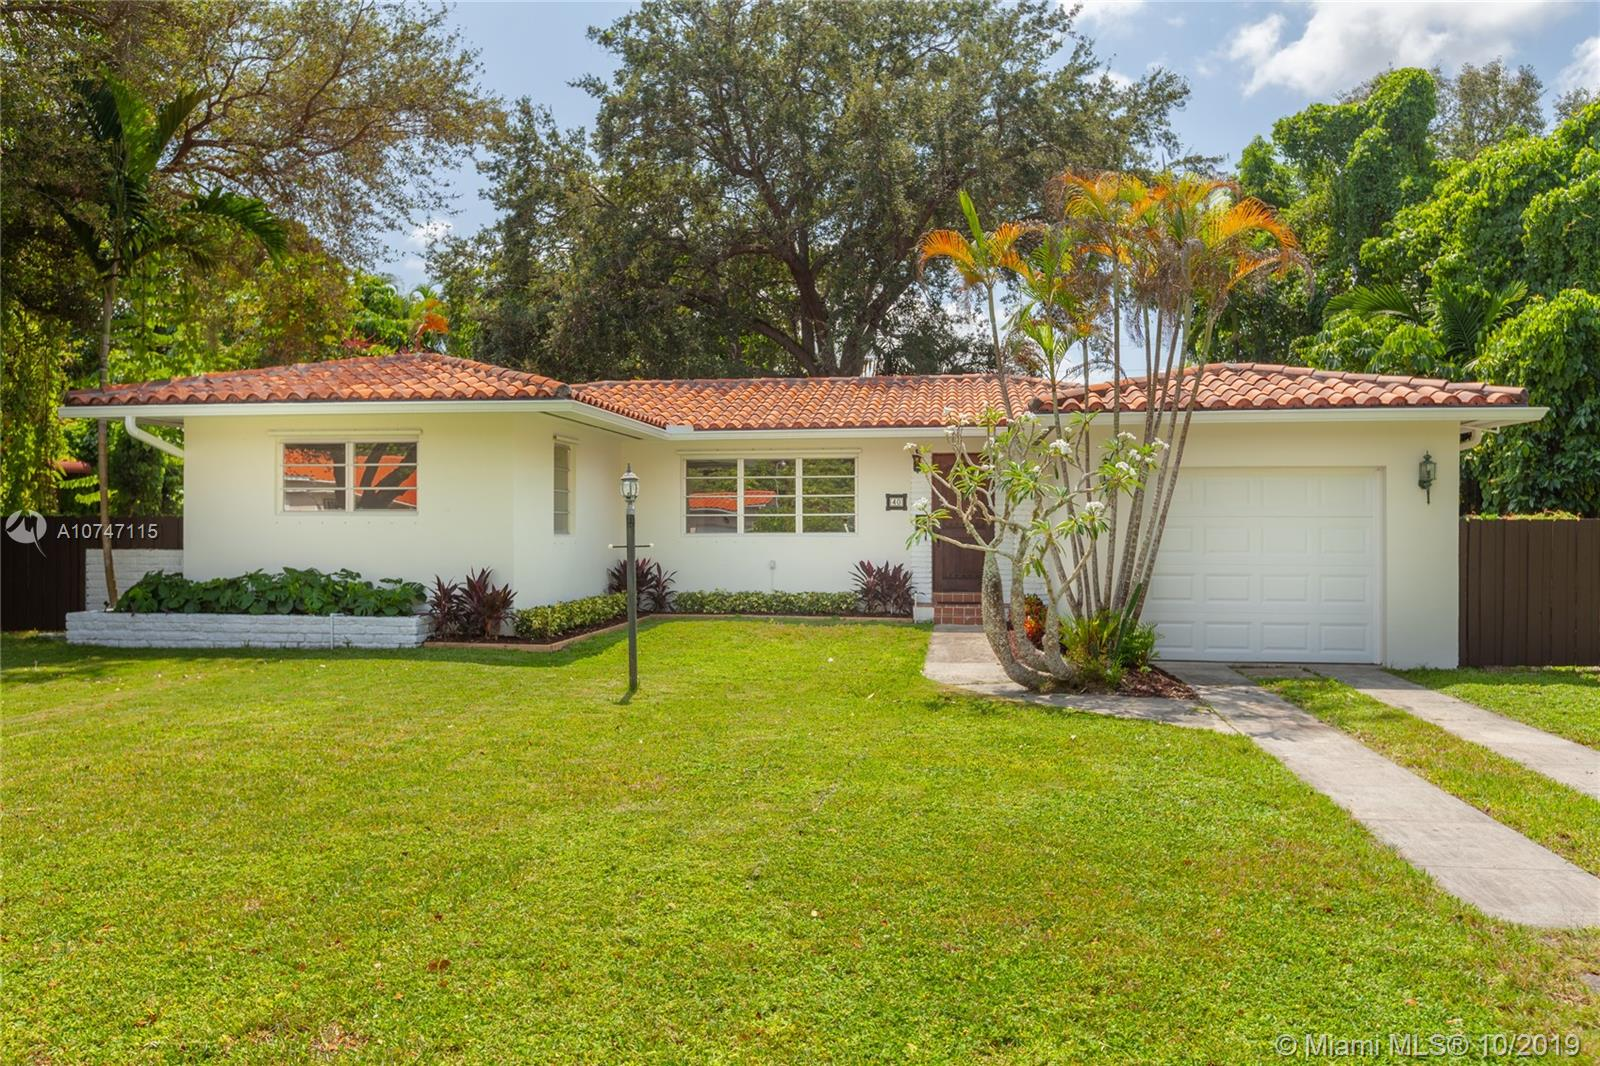 40 NW 102nd St, Miami Shores, Florida